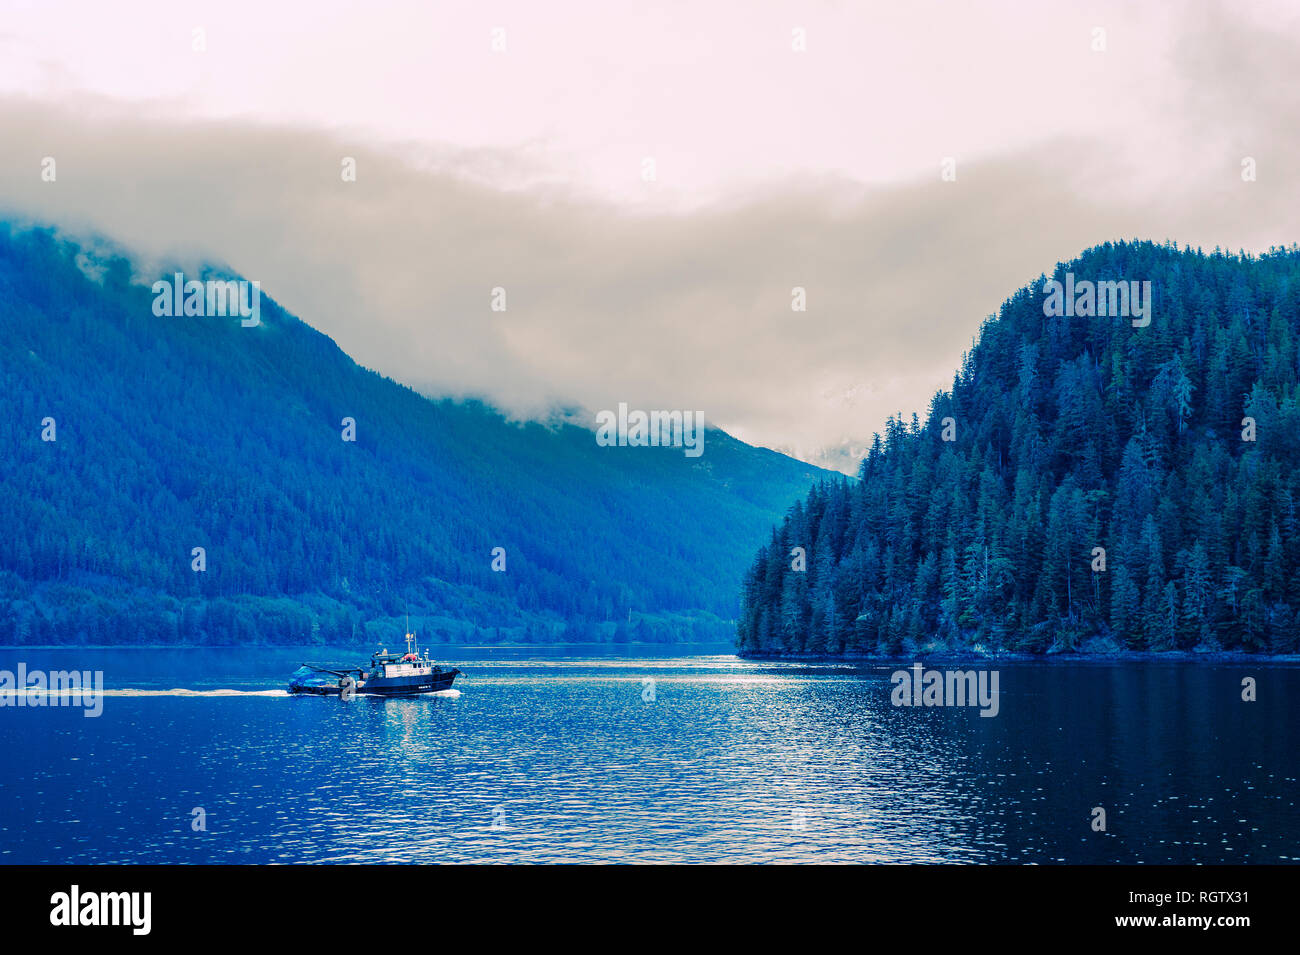 Commercial fishing tender departing Silver Bay fish processing plant near Sitka, Alaska, USA. Photography by Jeffrey Wickett, NorthLight Photography.  - Stock Image